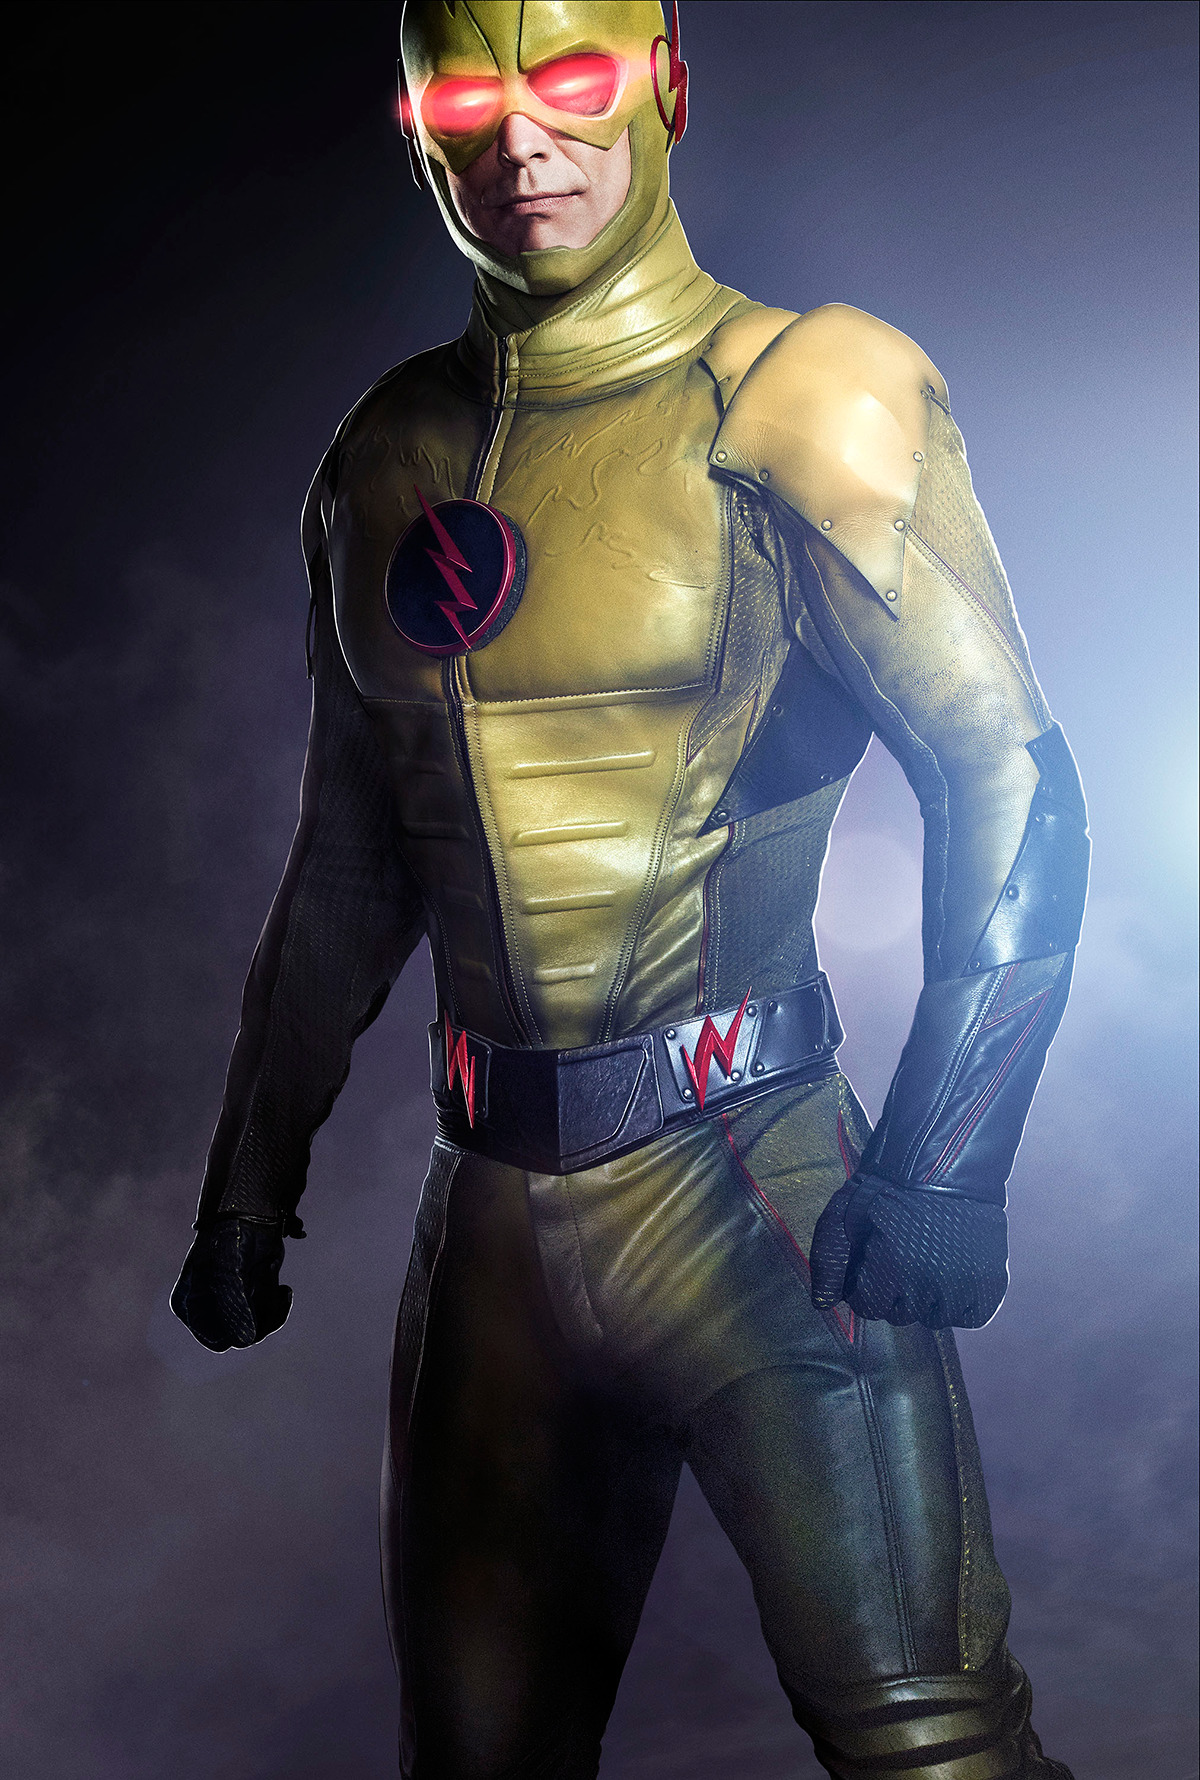 Archivo:Reverse-Flash promotional image.png